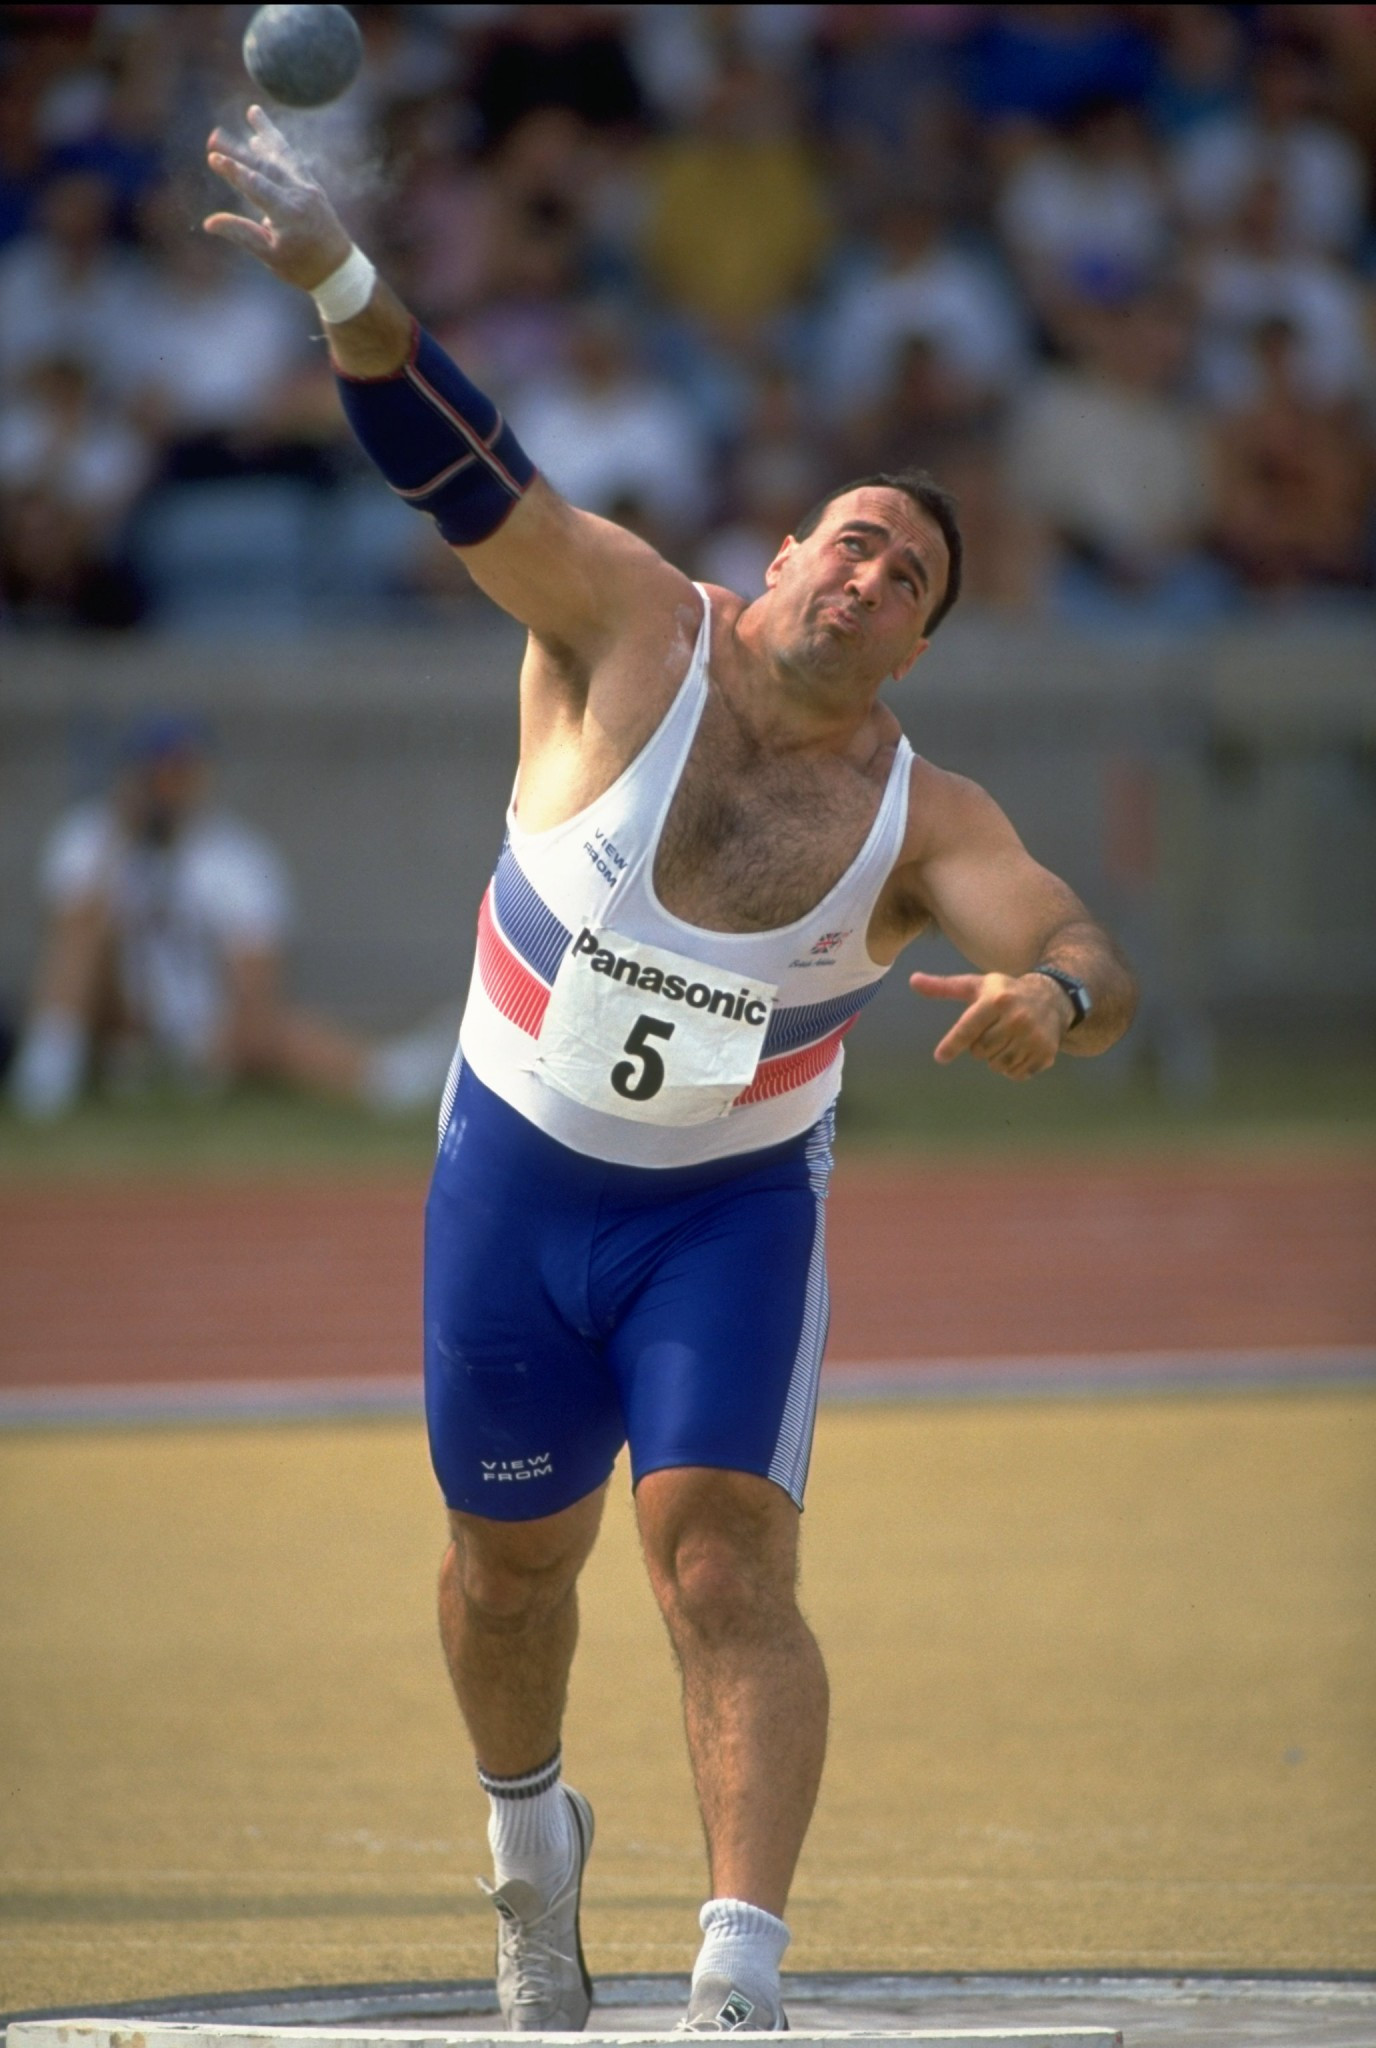 Paul Edwards, pictured during his international shot putting days, continues to dispute doping charges that earned him a life ban in 1997 ©Getty Images